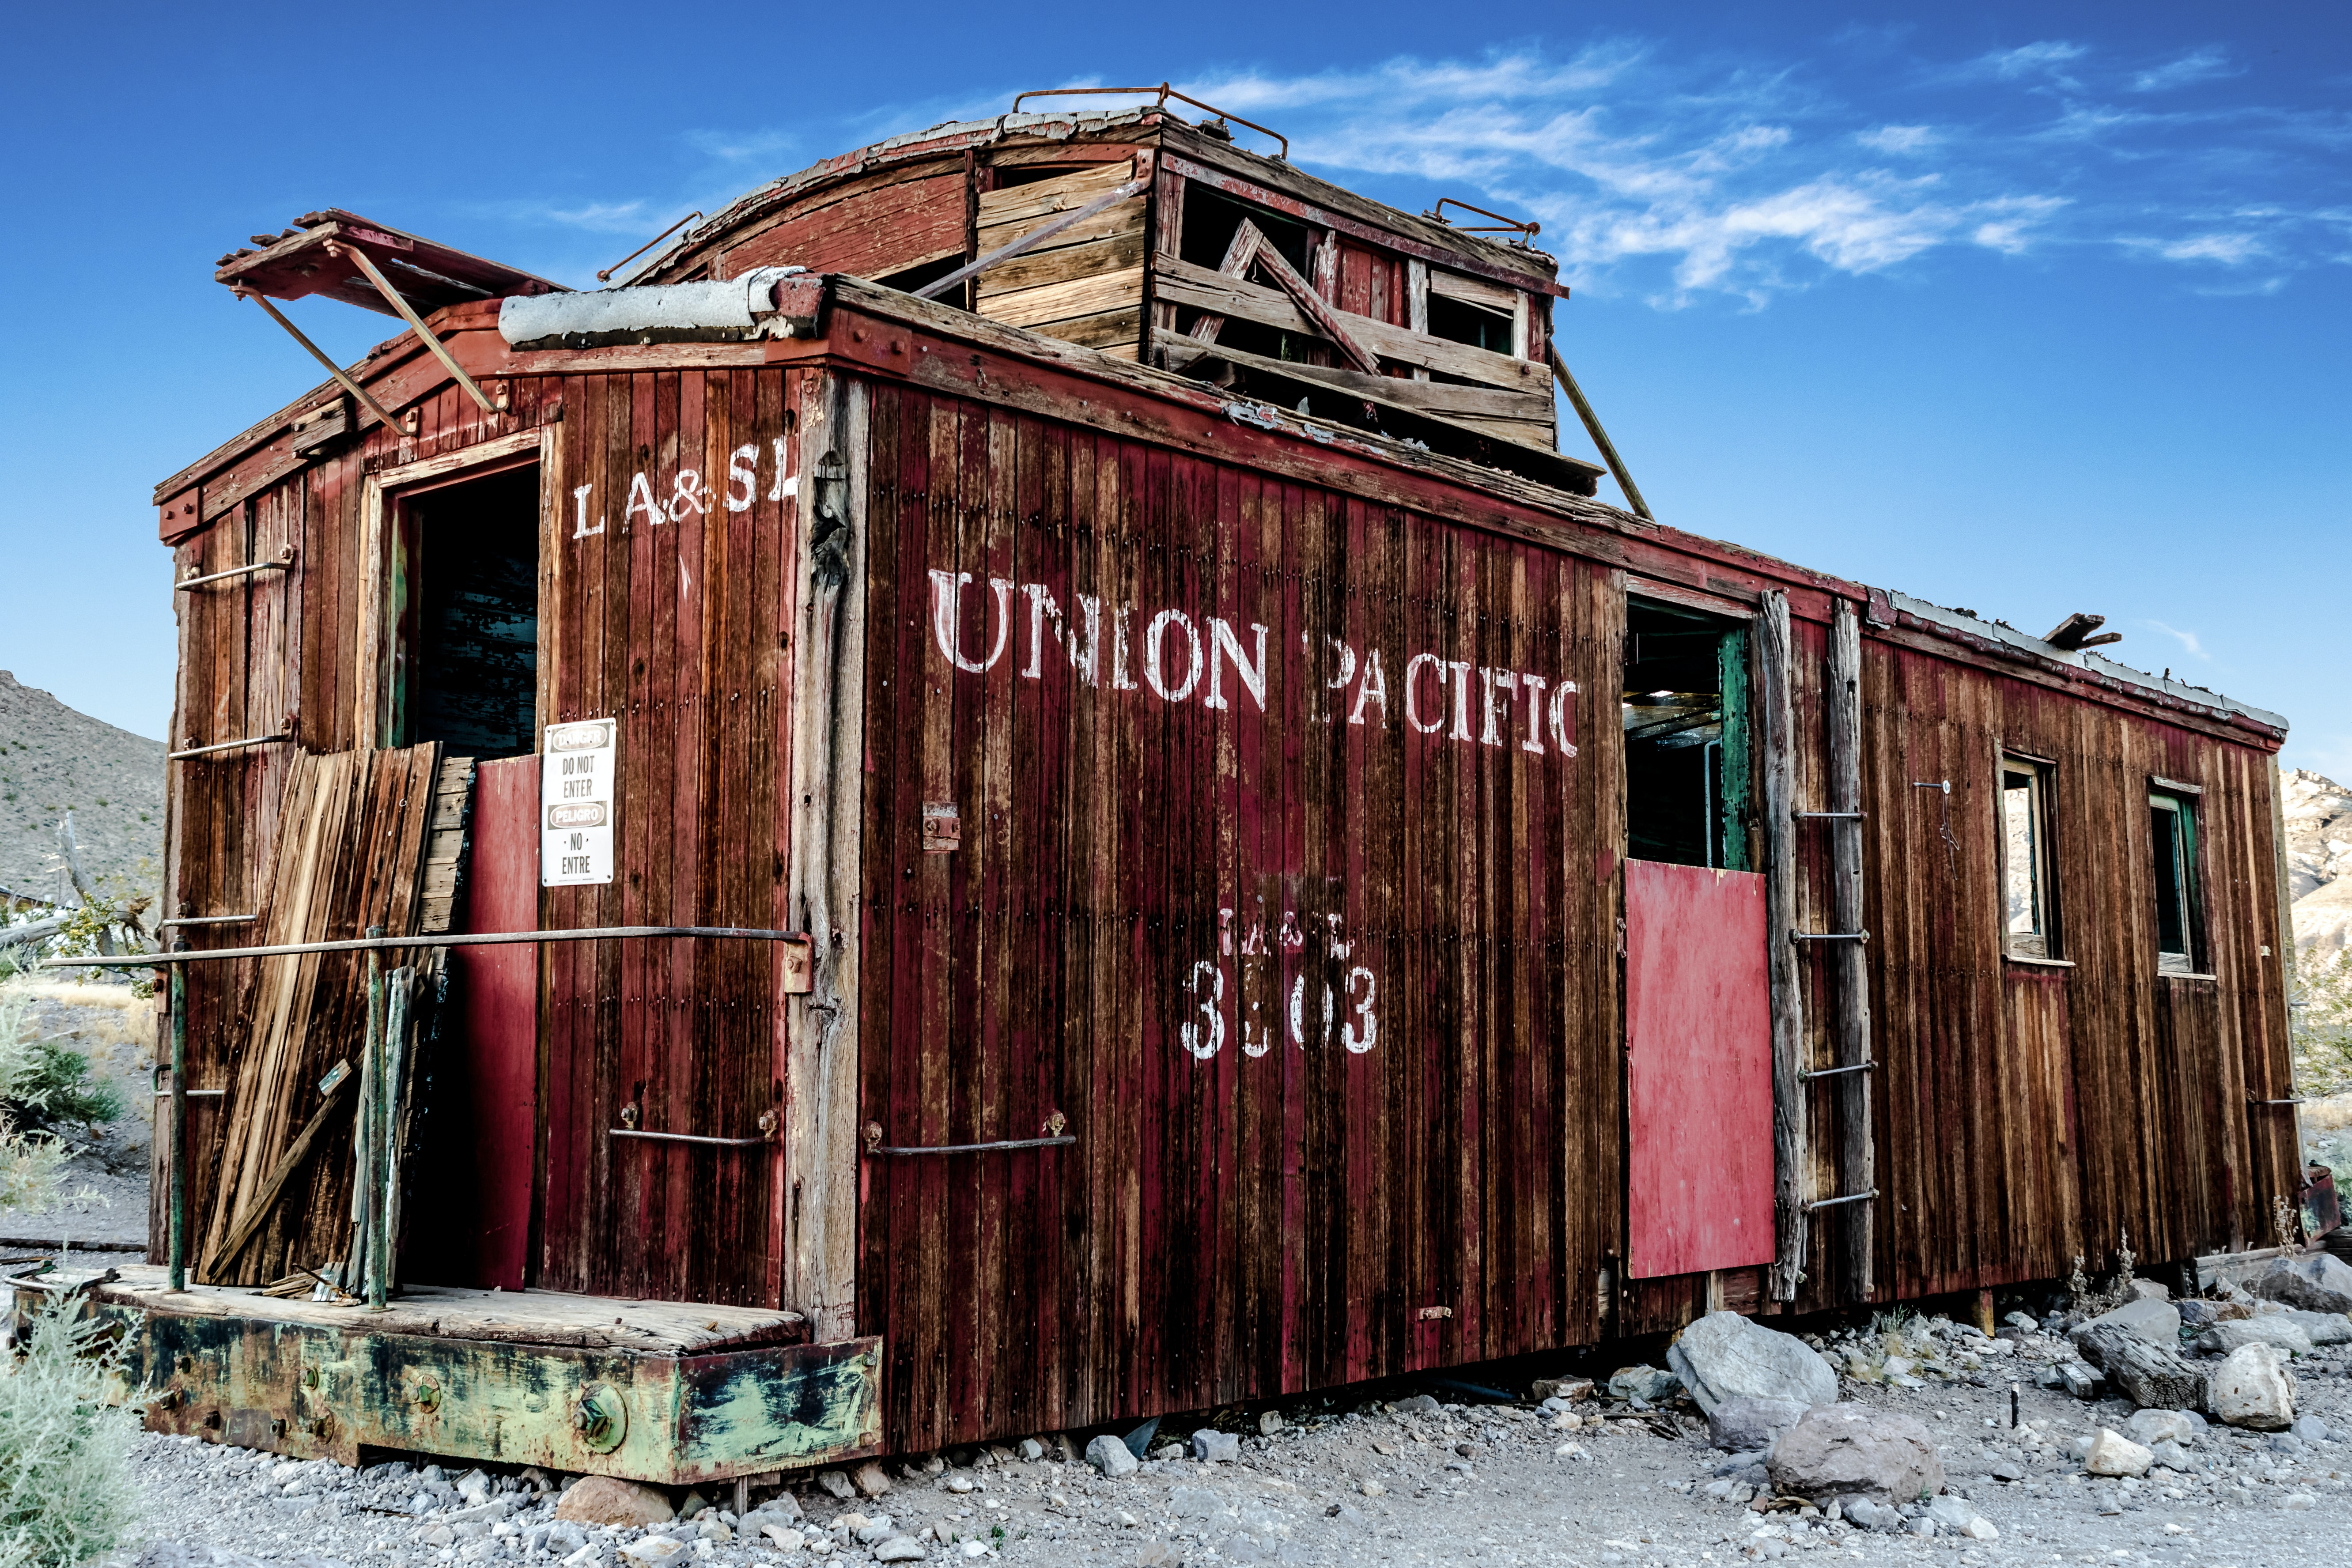 Old abandoned train car in the desert of Rhyolite